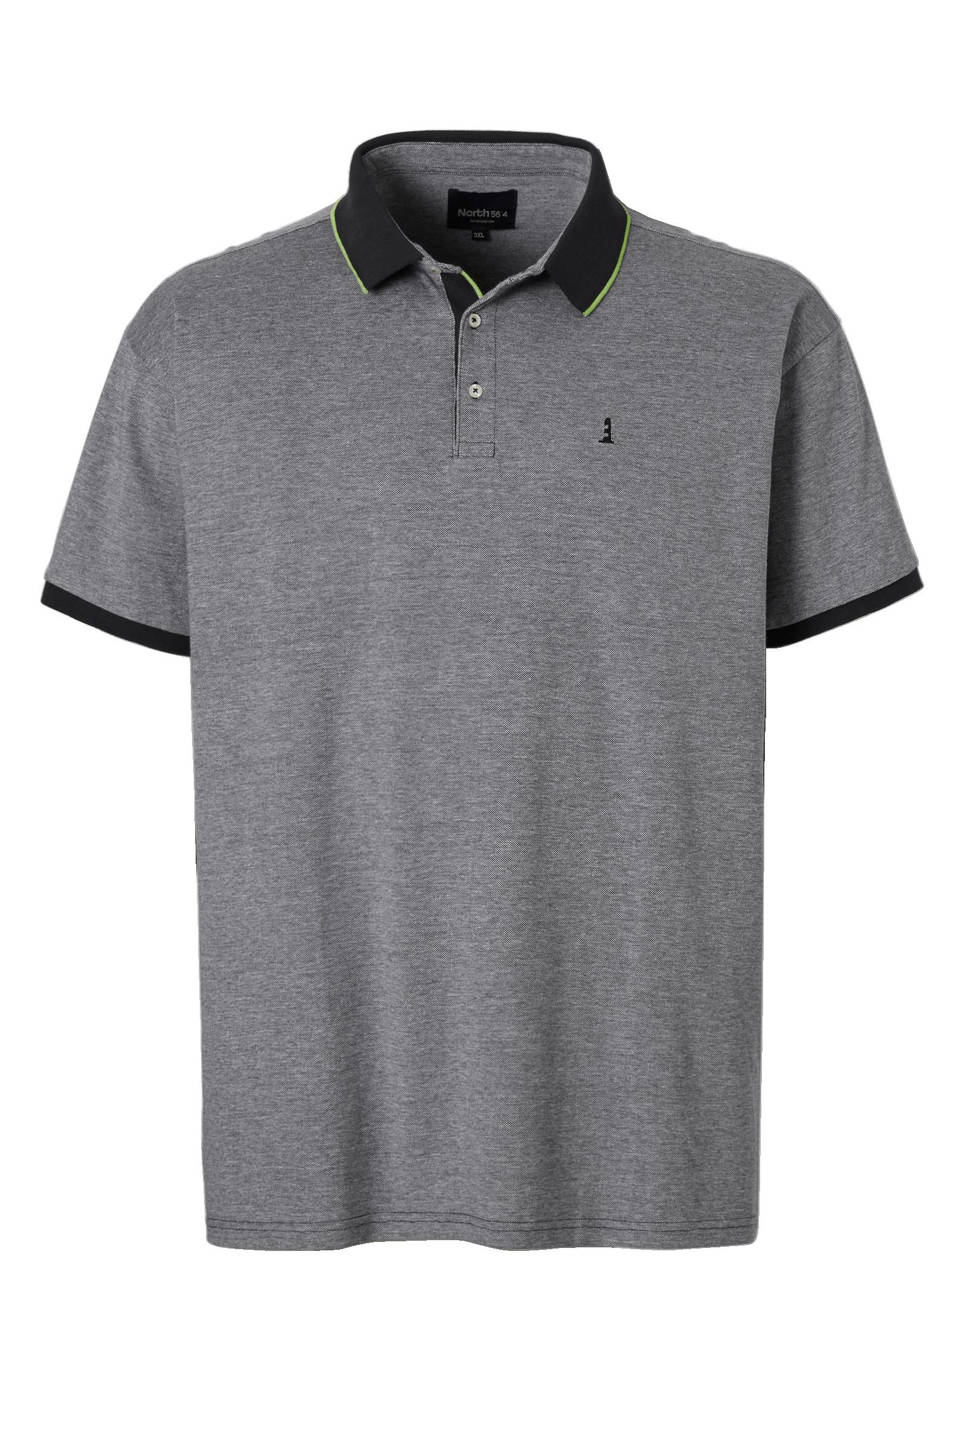 North 56°4 +size polo (heren), Zwart